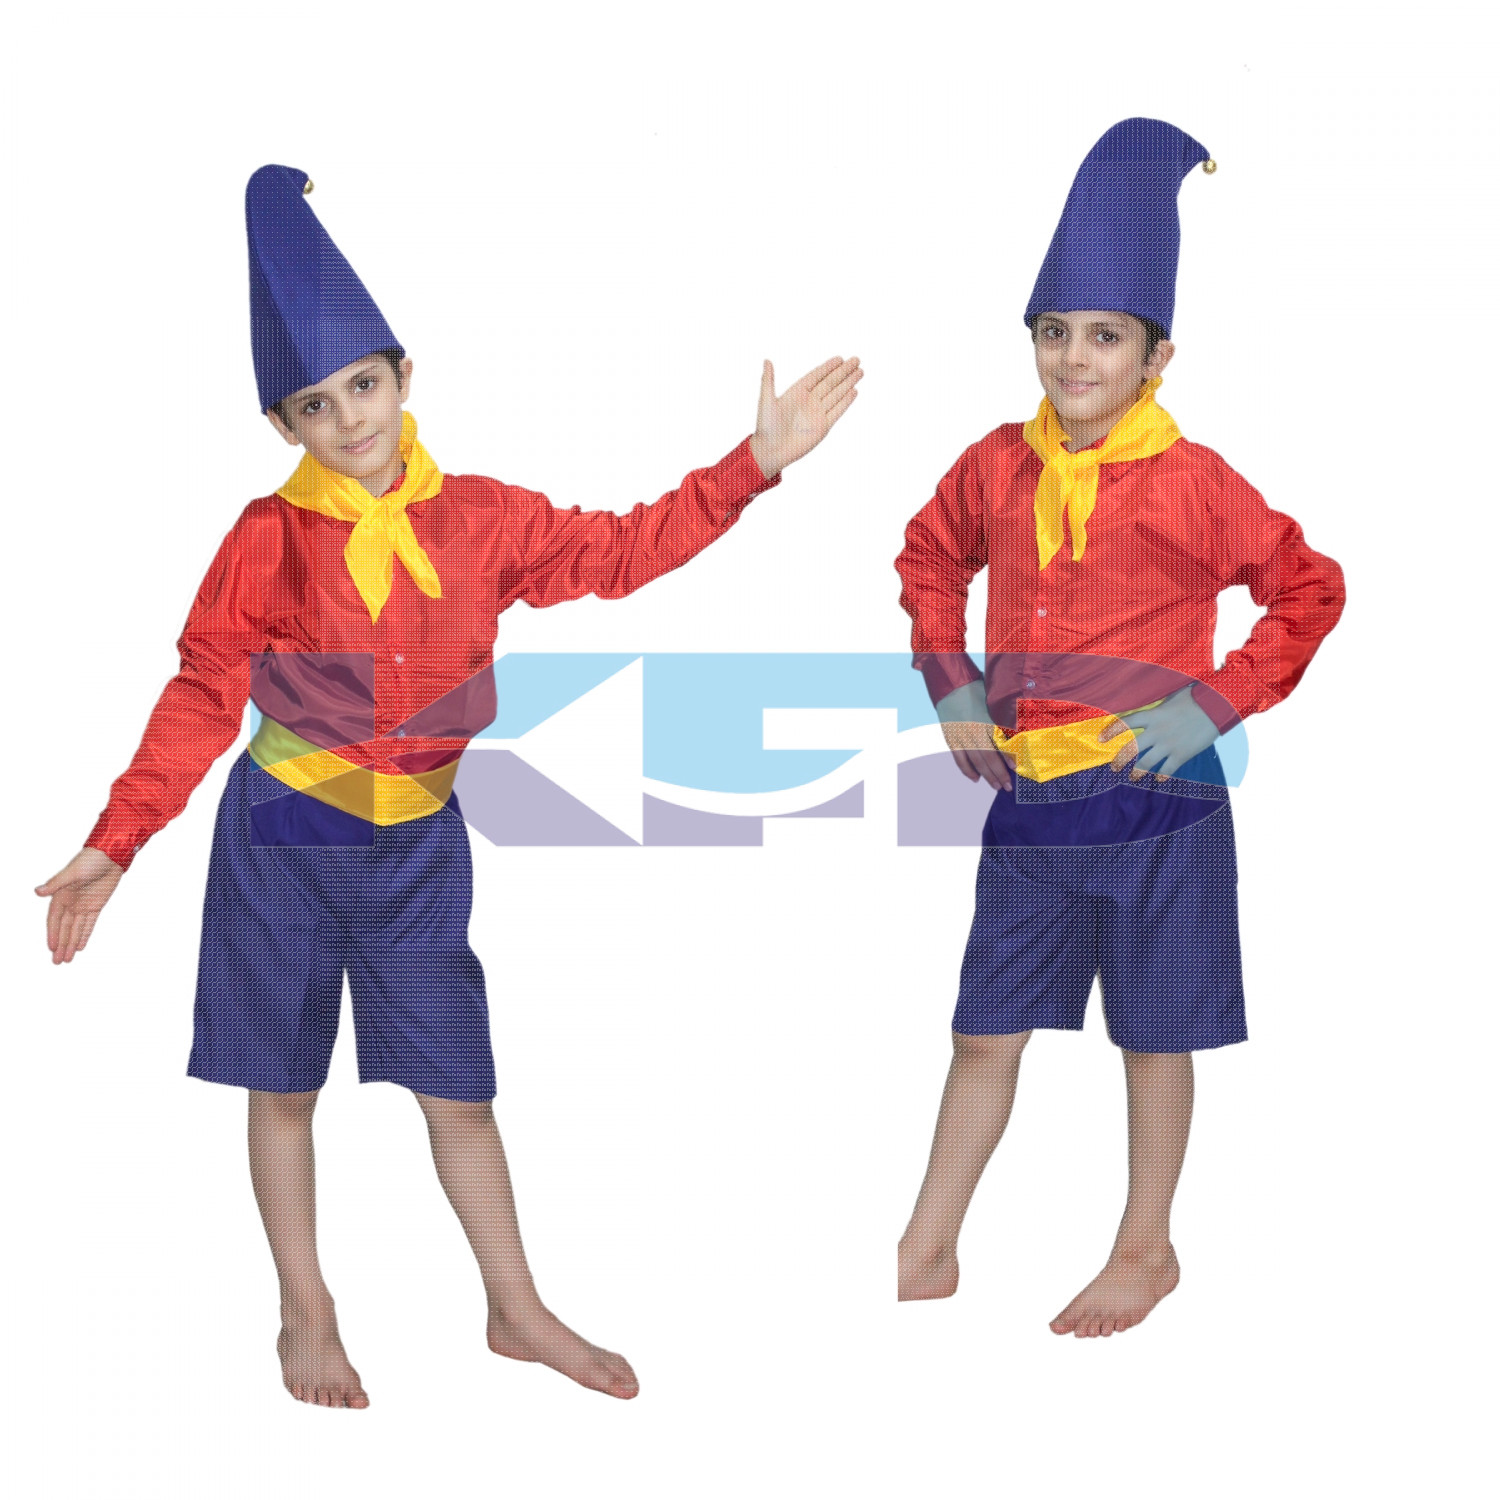 Noddy Cartoon Fancy dress for kids,Costume for Annual function/Theme Party/Stage Shows/Competition/Birthday Party Dress